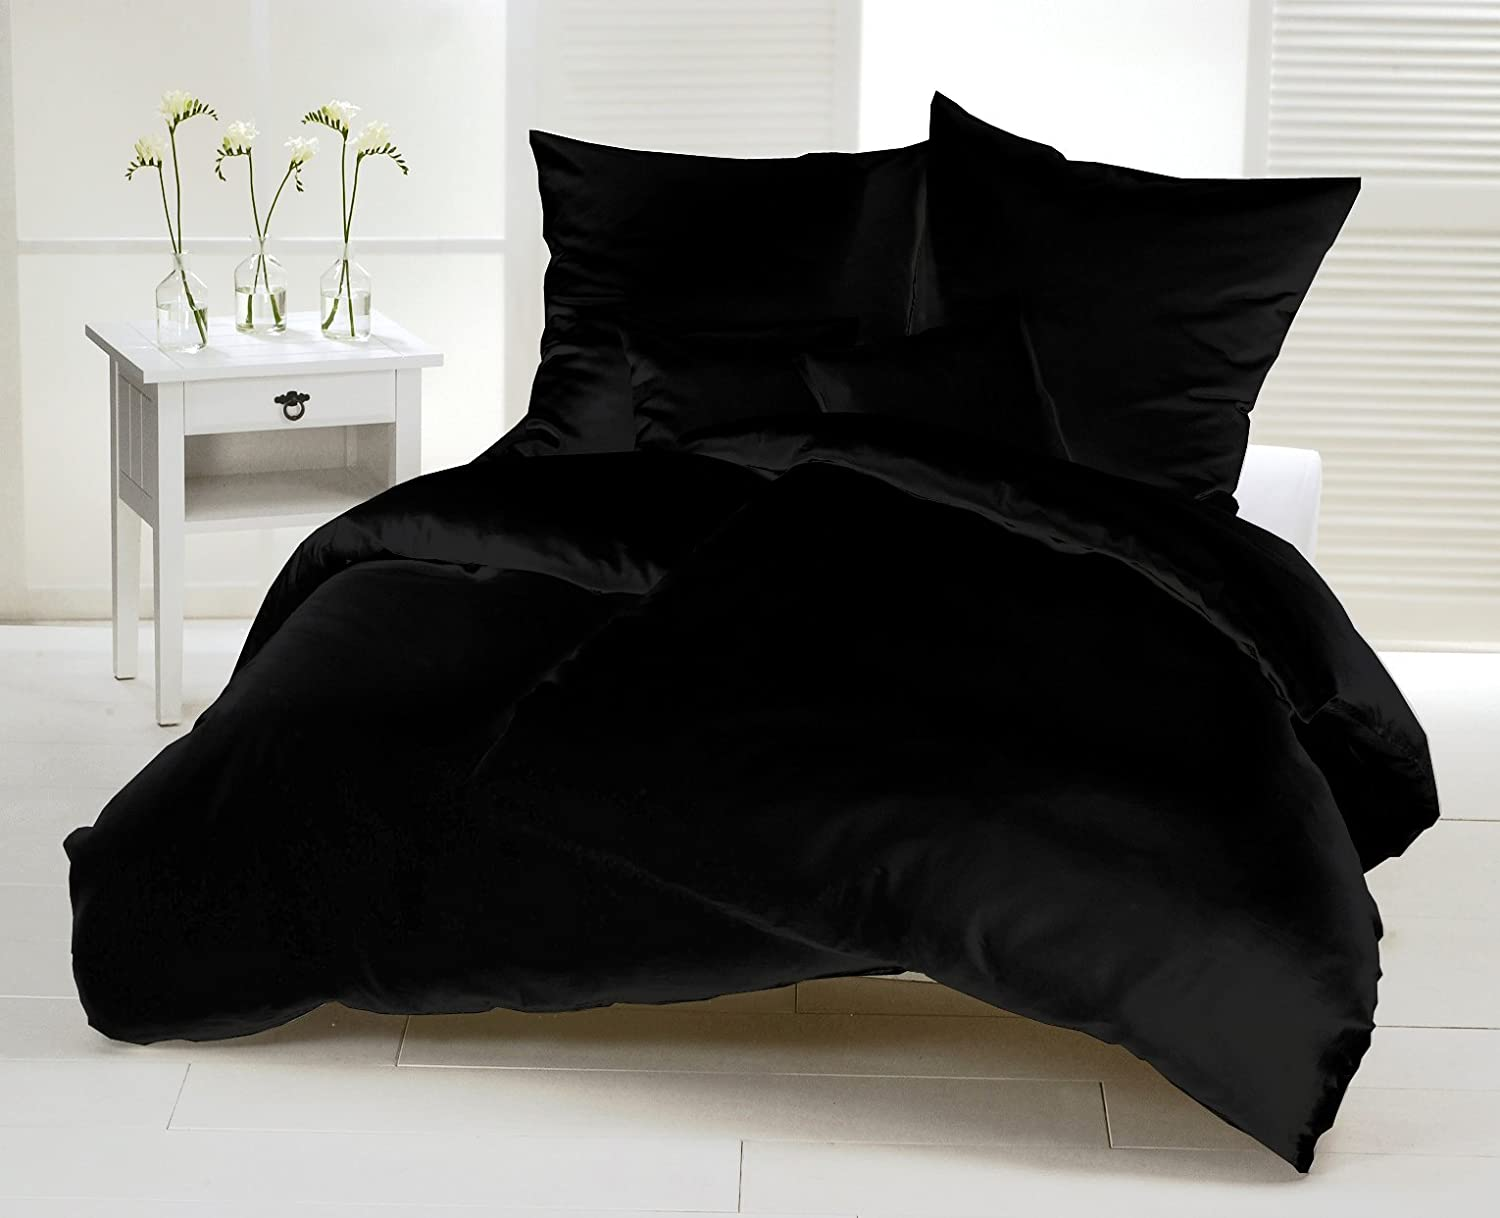 bettw sche schwarz my blog. Black Bedroom Furniture Sets. Home Design Ideas